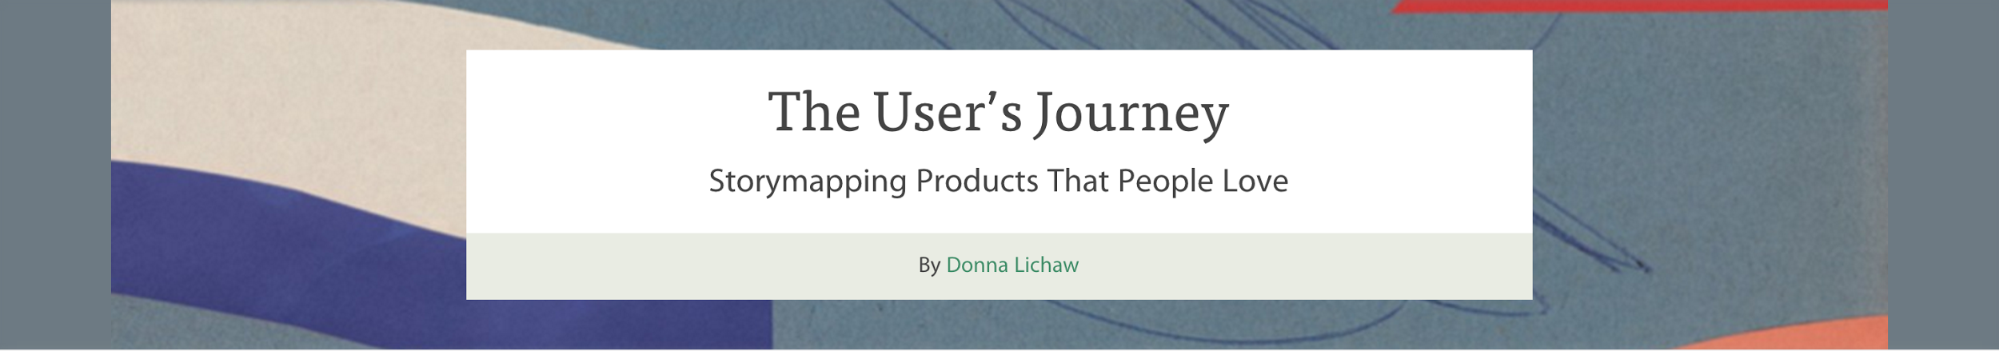 The User's Journey purchase page.